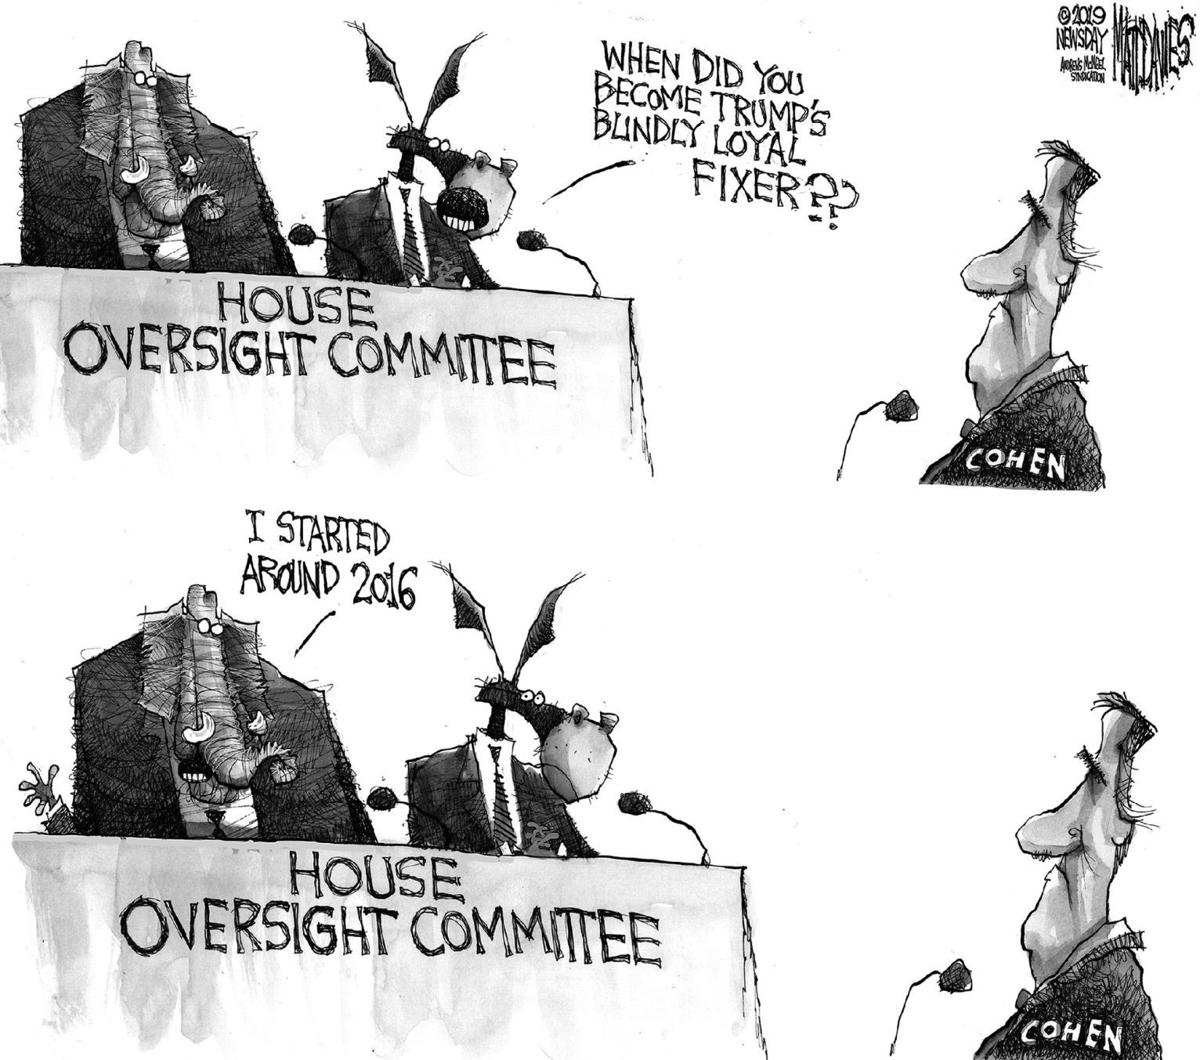 House Oversight Committee